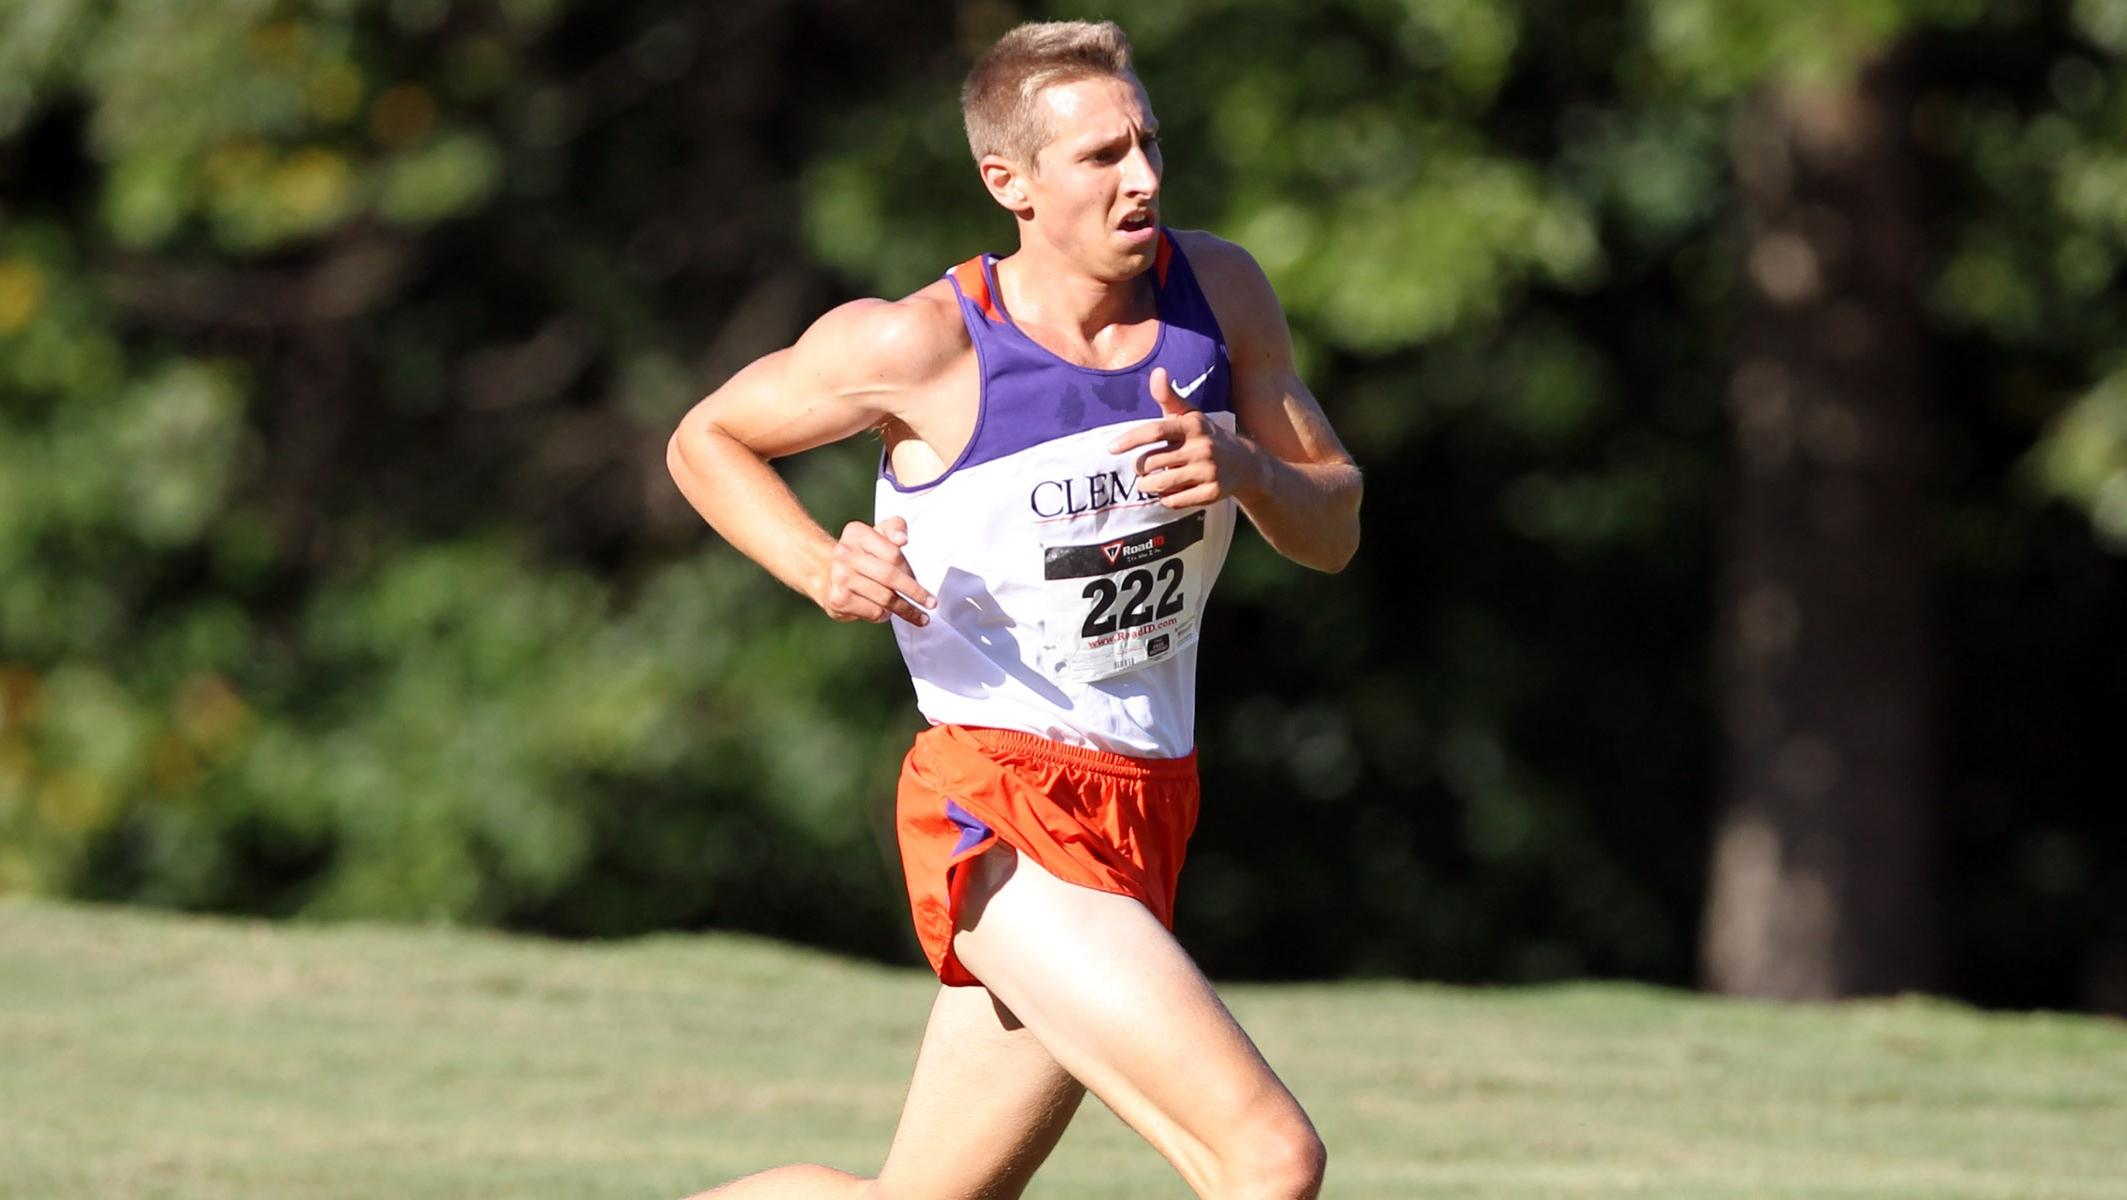 Hakes, Talty Named to All-ACC Academic Cross Country Team